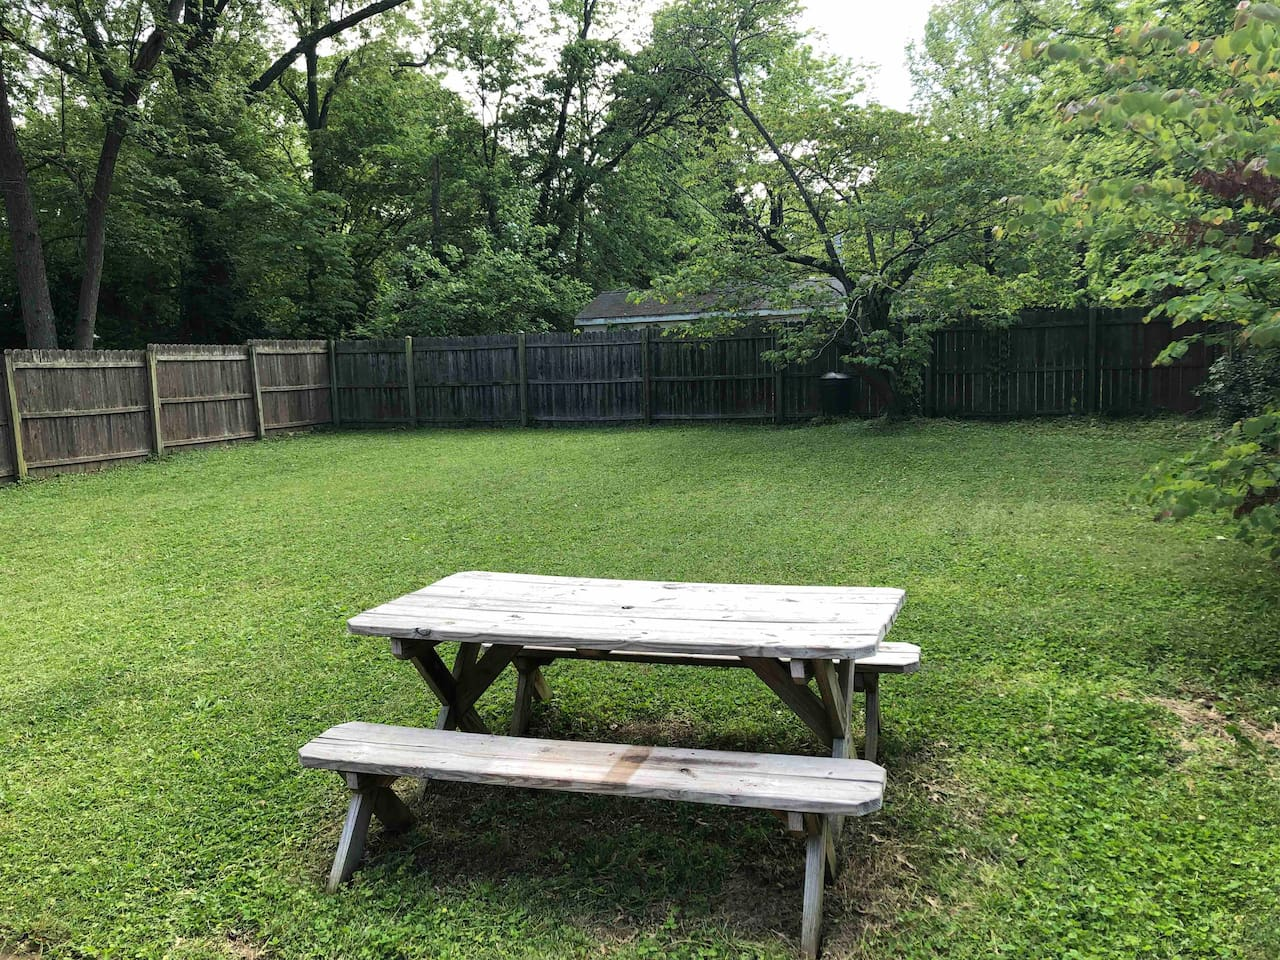 Backyard and picnic table